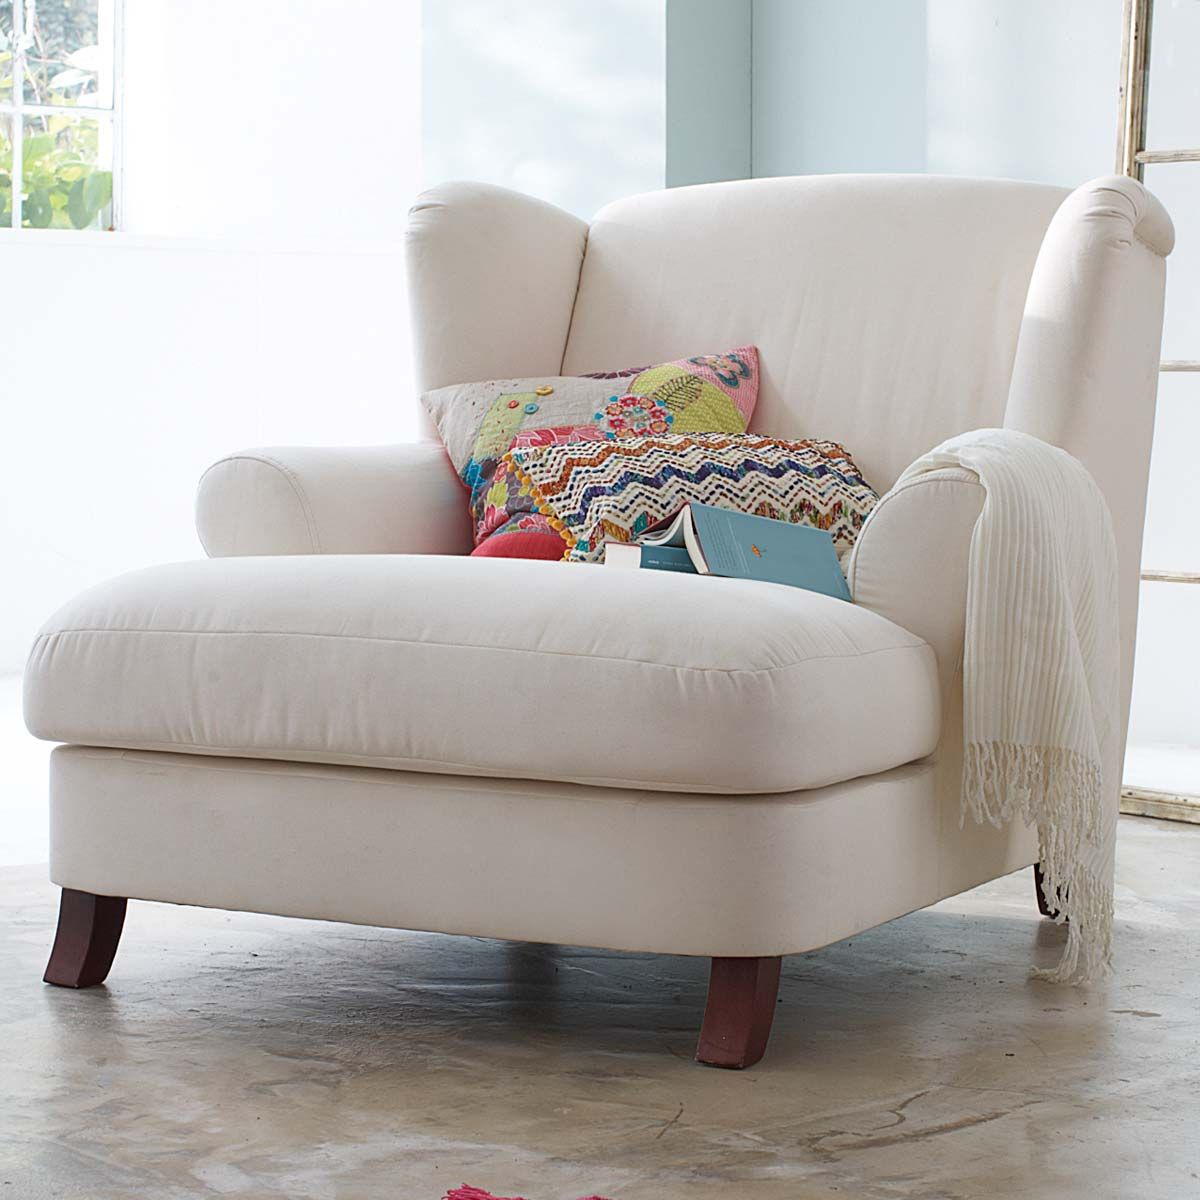 Reading Chair For Bedroom Dream Chair Via Somewhere North To Build A Home